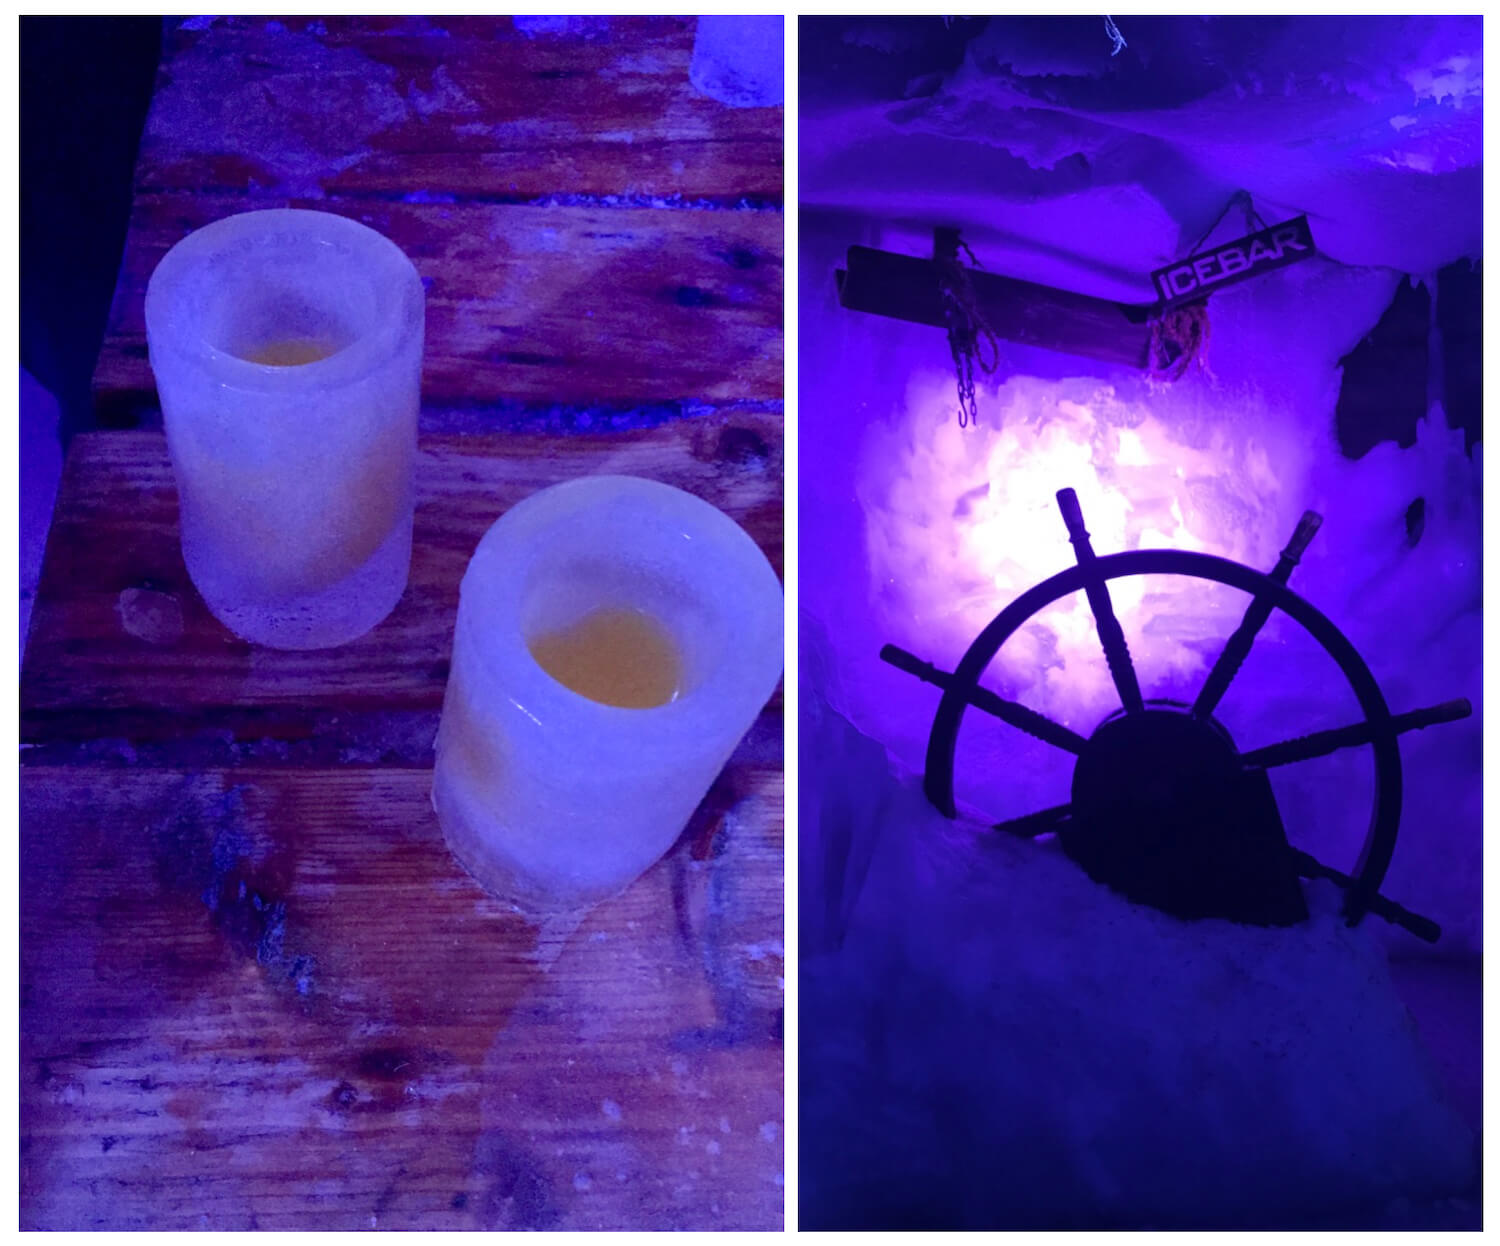 Xtracold Icebar Amsterdam Ice Glasses and ships wheel collage